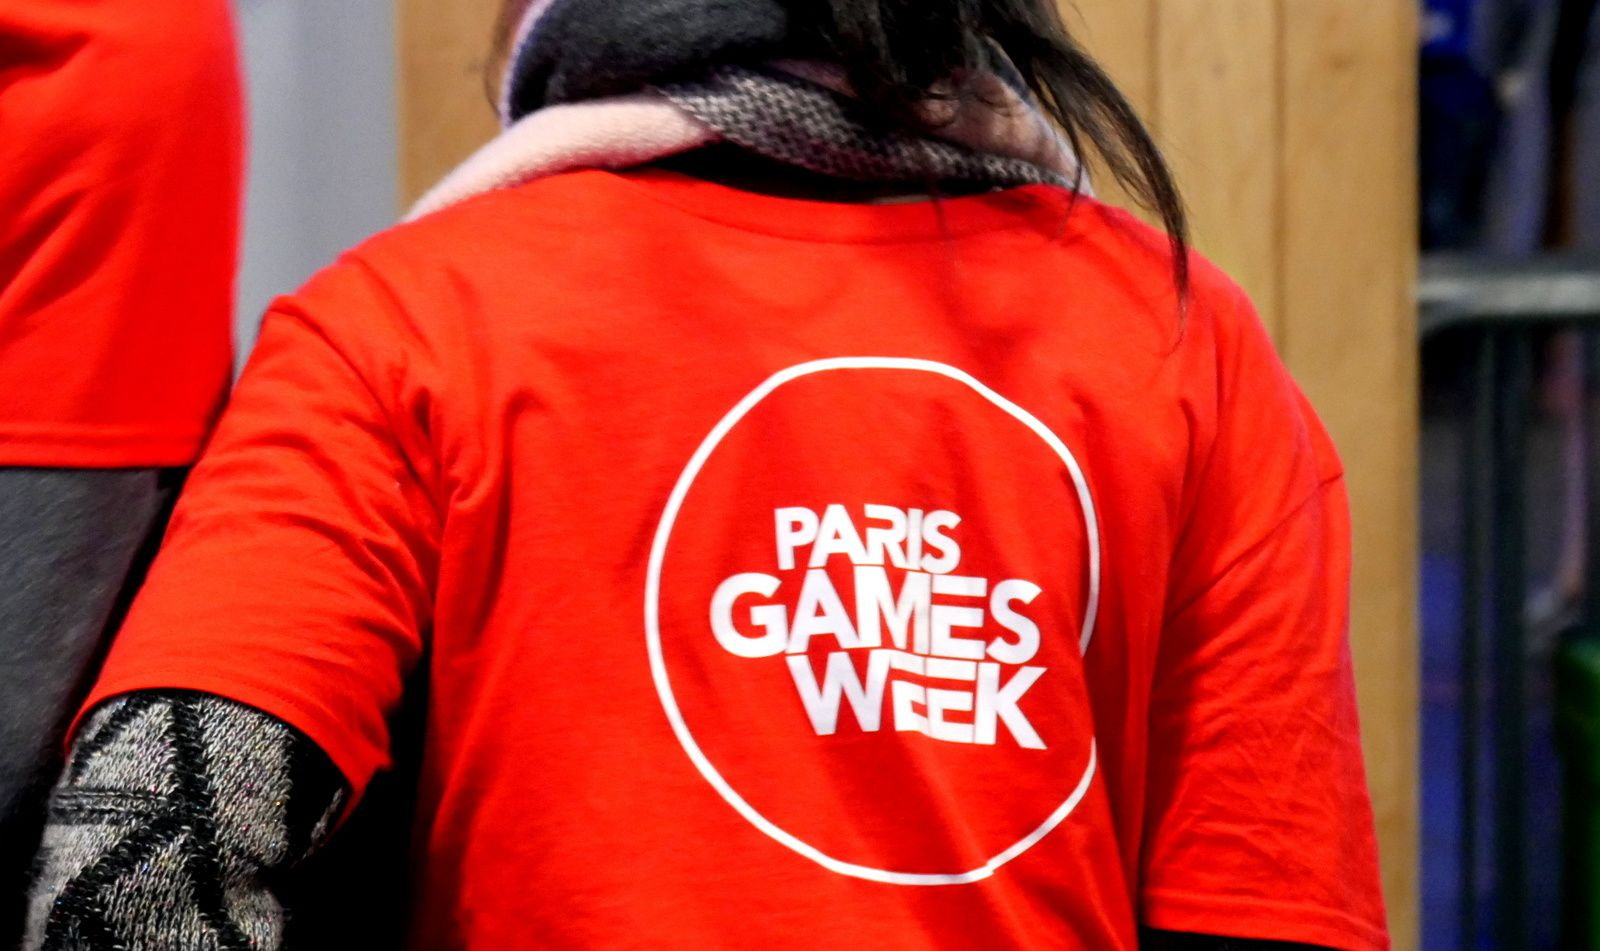 Fortnite à la Paris Games Week